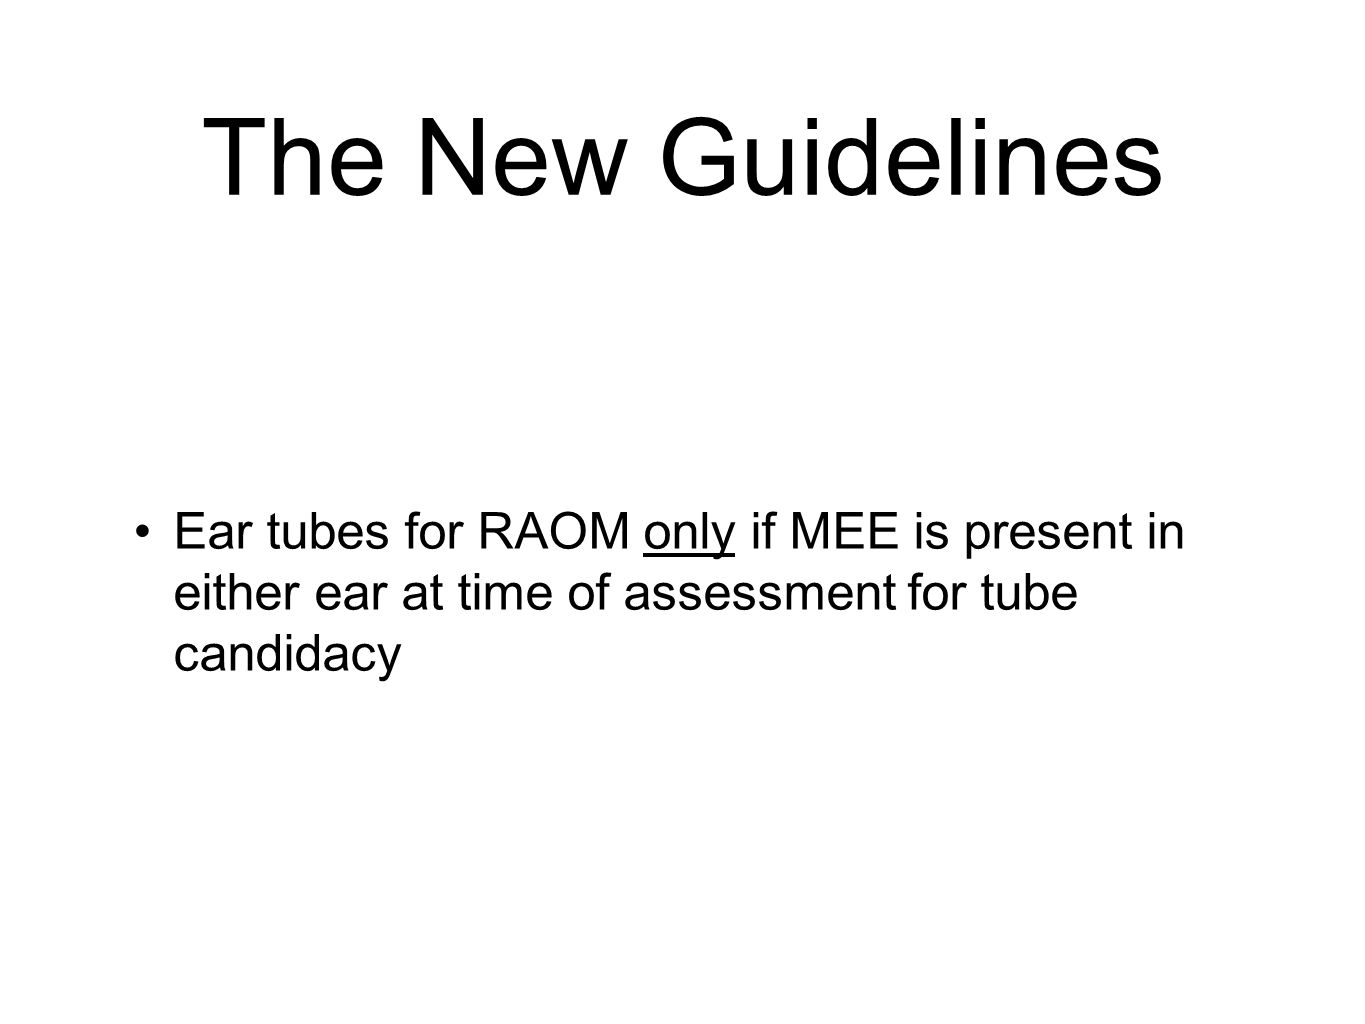 The New Guidelines Ear tubes for RAOM only if MEE is present in either ear at time of assessment for tube candidacy